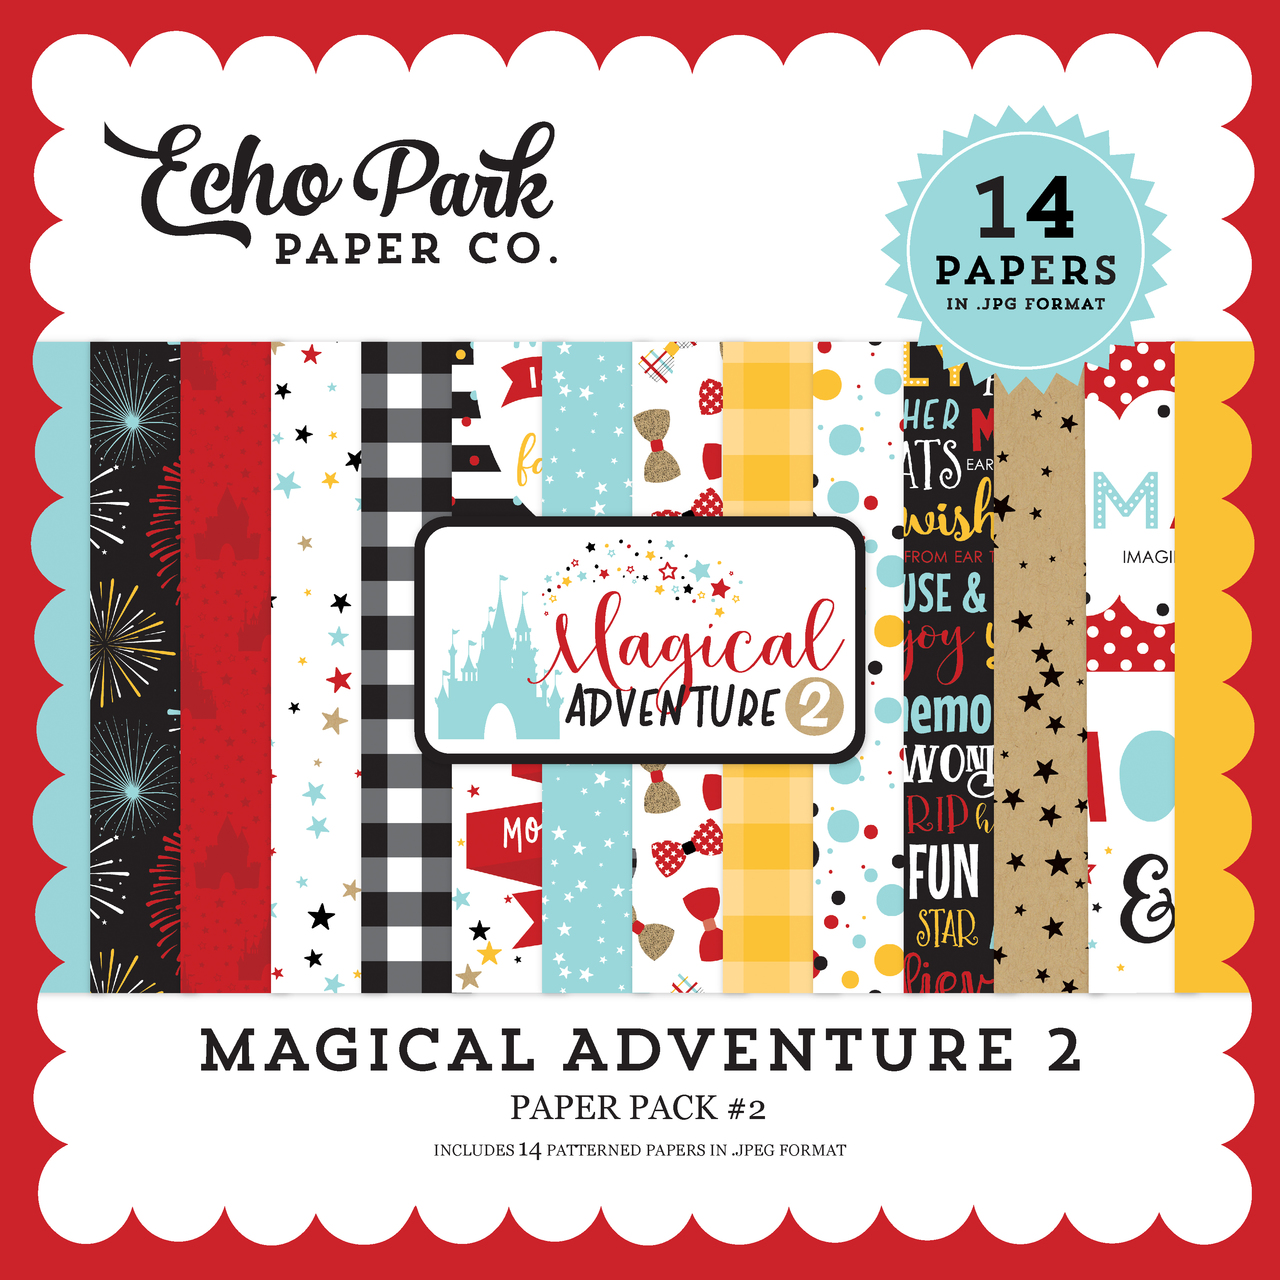 Magical Adventure 2 Paper Pack #2